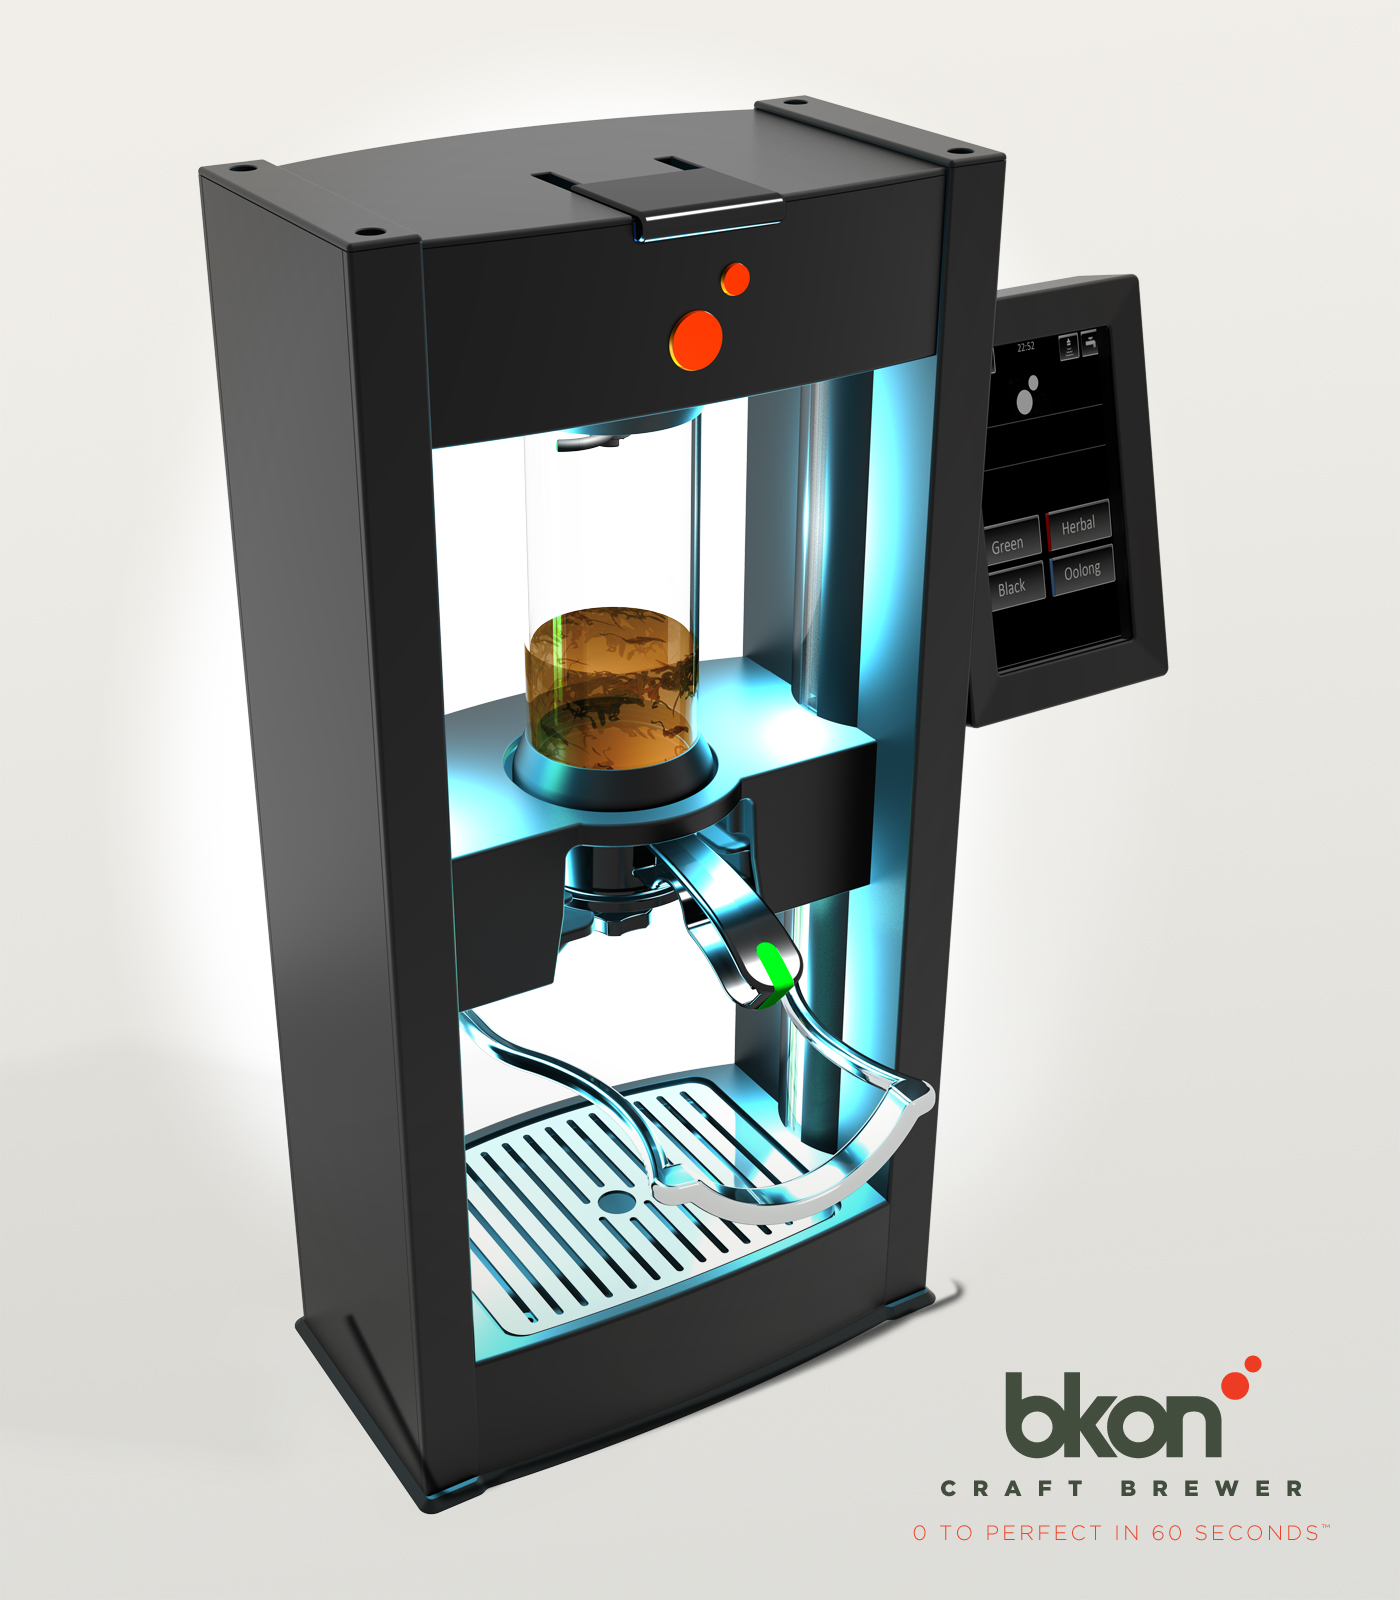 bkon-craftbrewer2